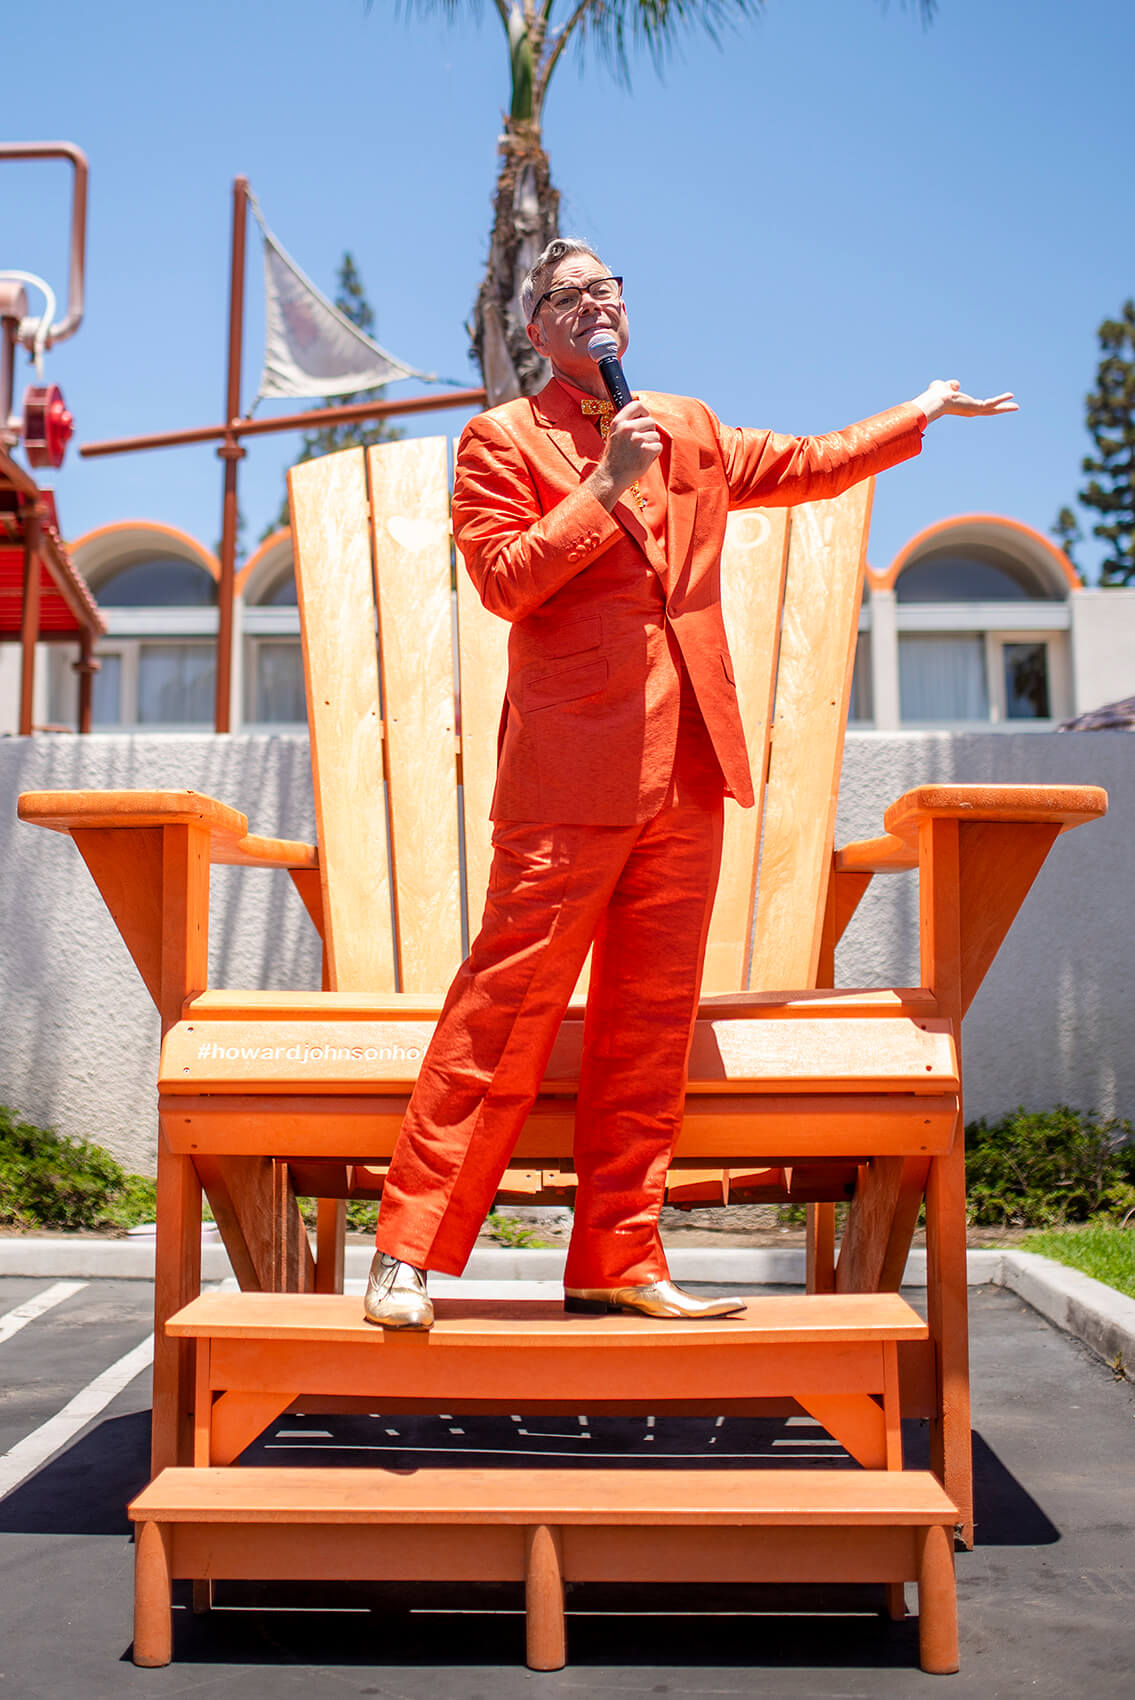 pop culture historian Charles Phoenix holds a microphone atop the large orange Adirondack chair at Howard Johnson Anaheim